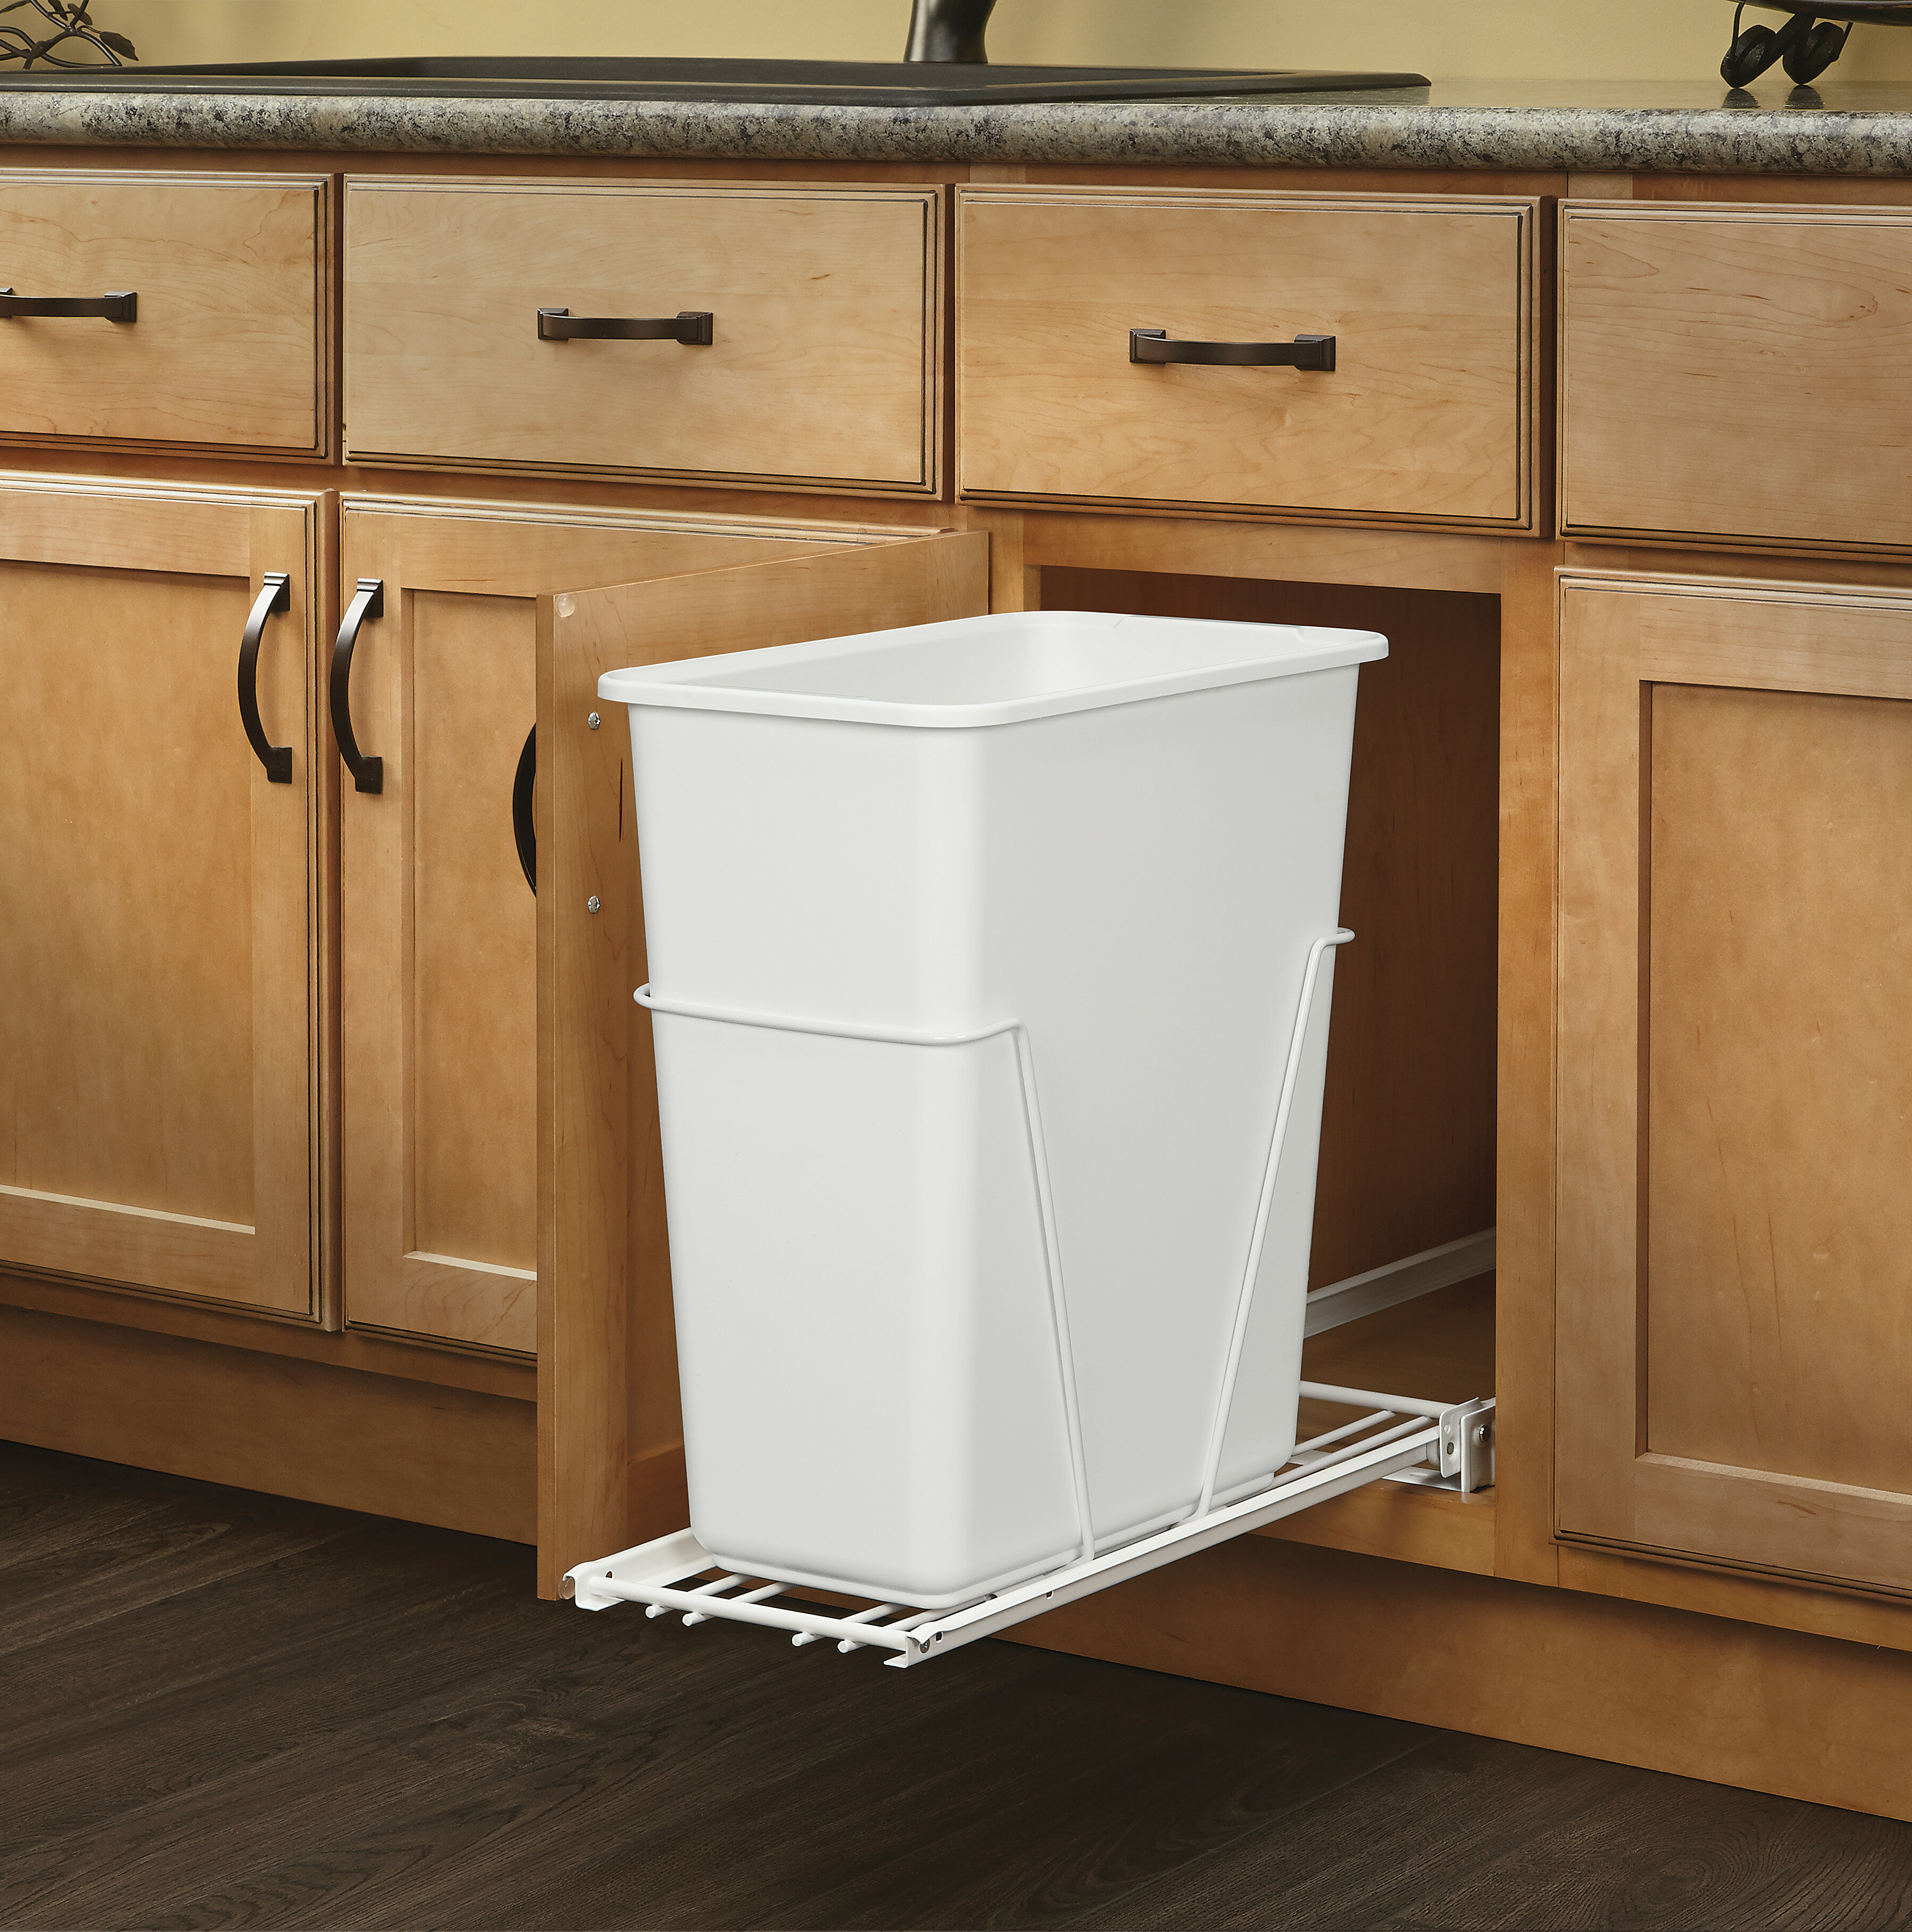 Superieur Rev A Shelf 7.5 Gallon Pull Out/Under Counter Trash Can U0026 Reviews | Wayfair